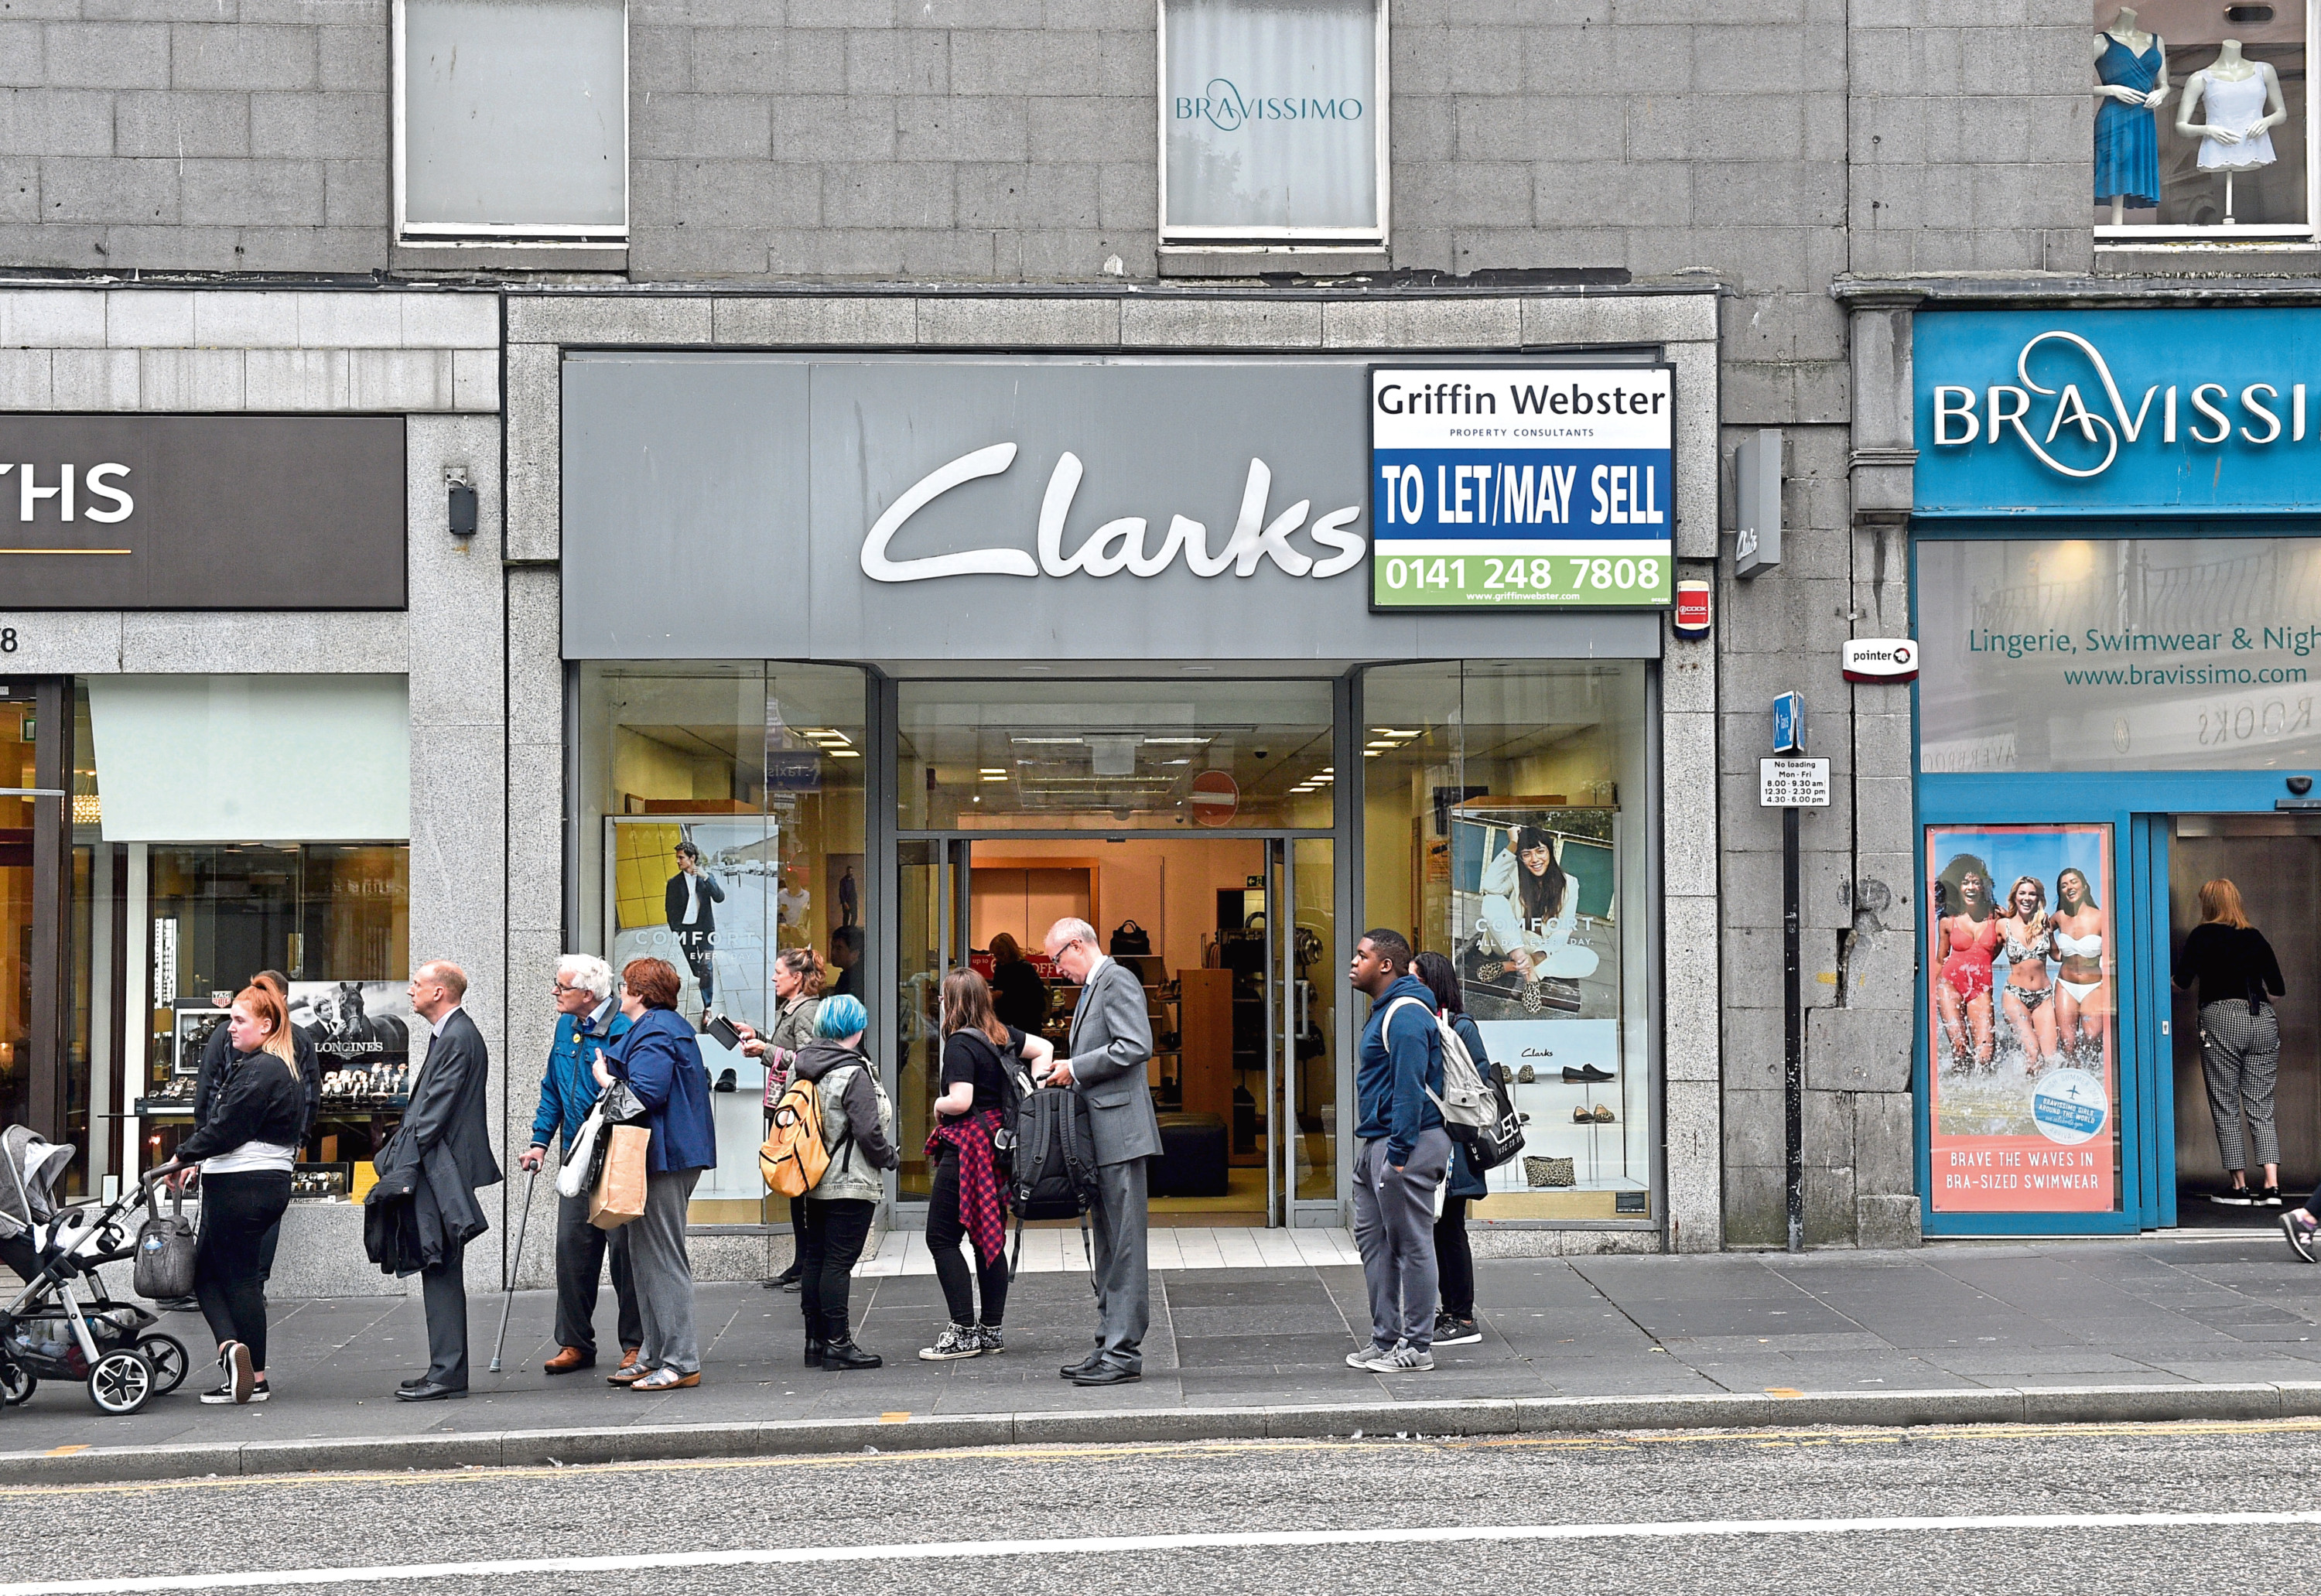 Clarks has been a fixture on Aberdeen's Union Street since the 70s